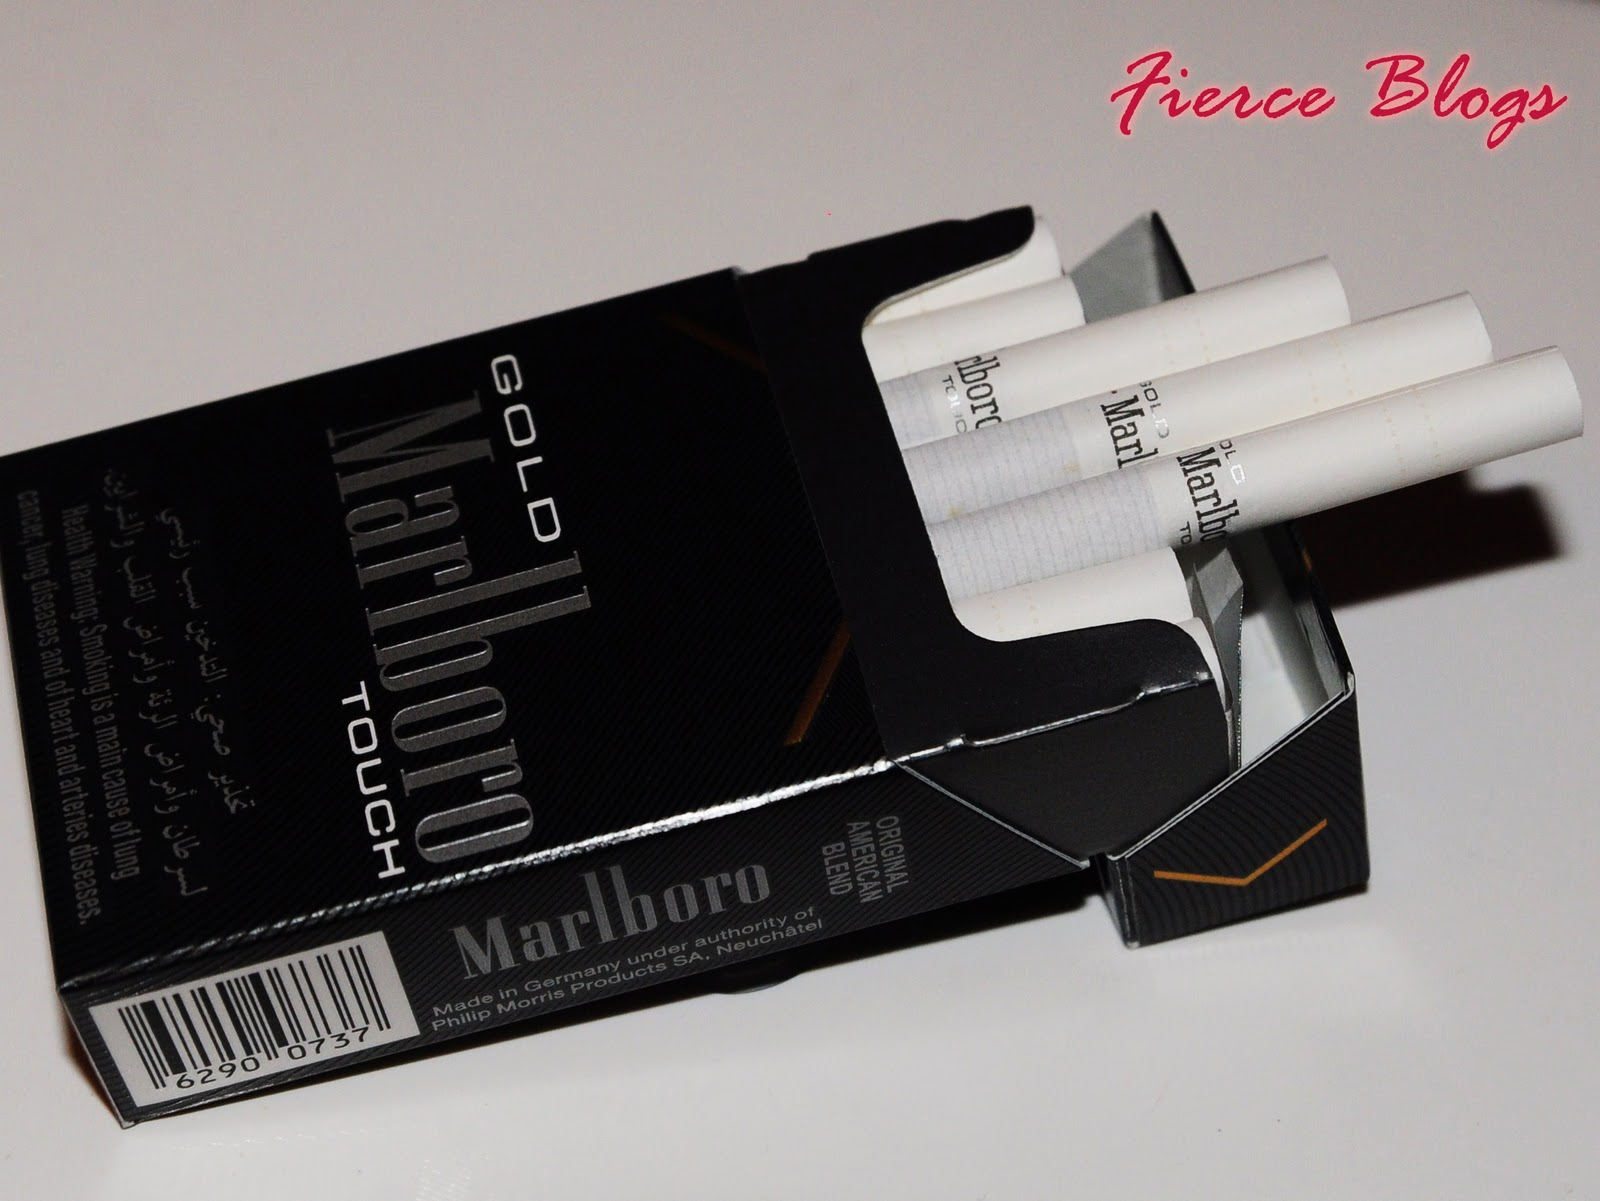 قیمت سیگار سناتور Fierce Blogs: Gold Marlboro Touch